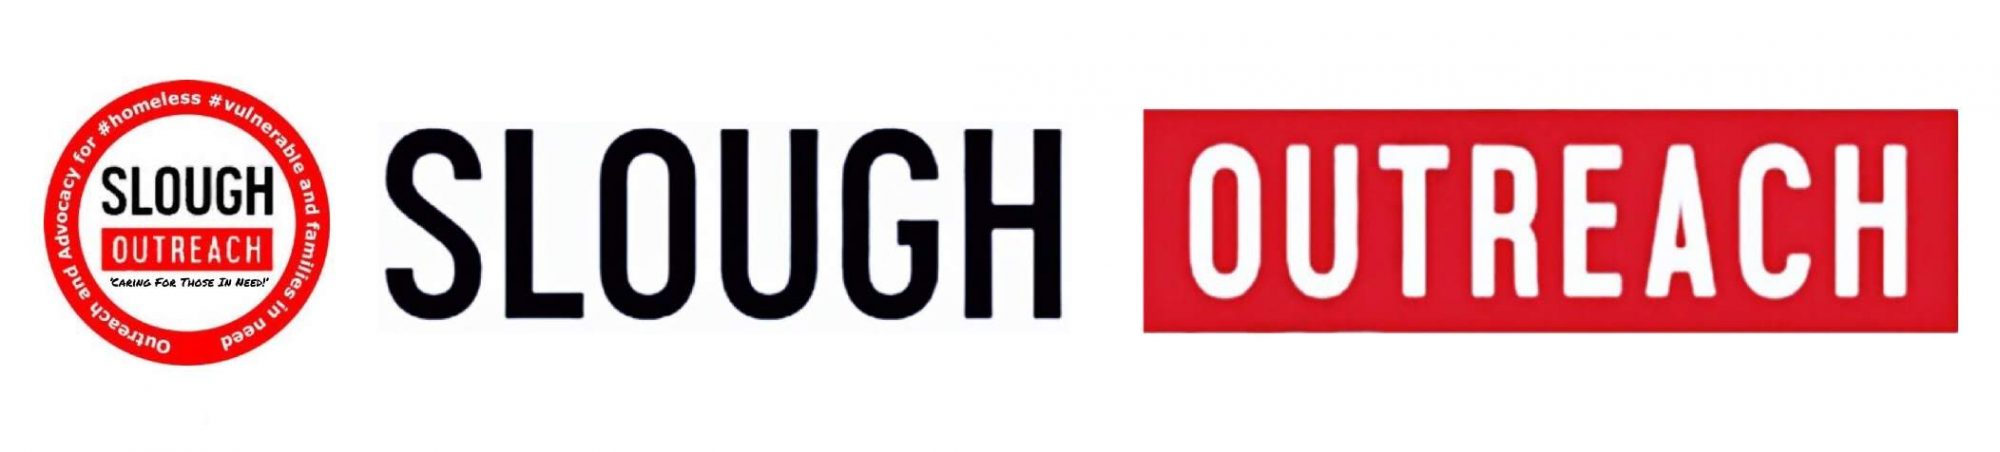 Slough Outreach